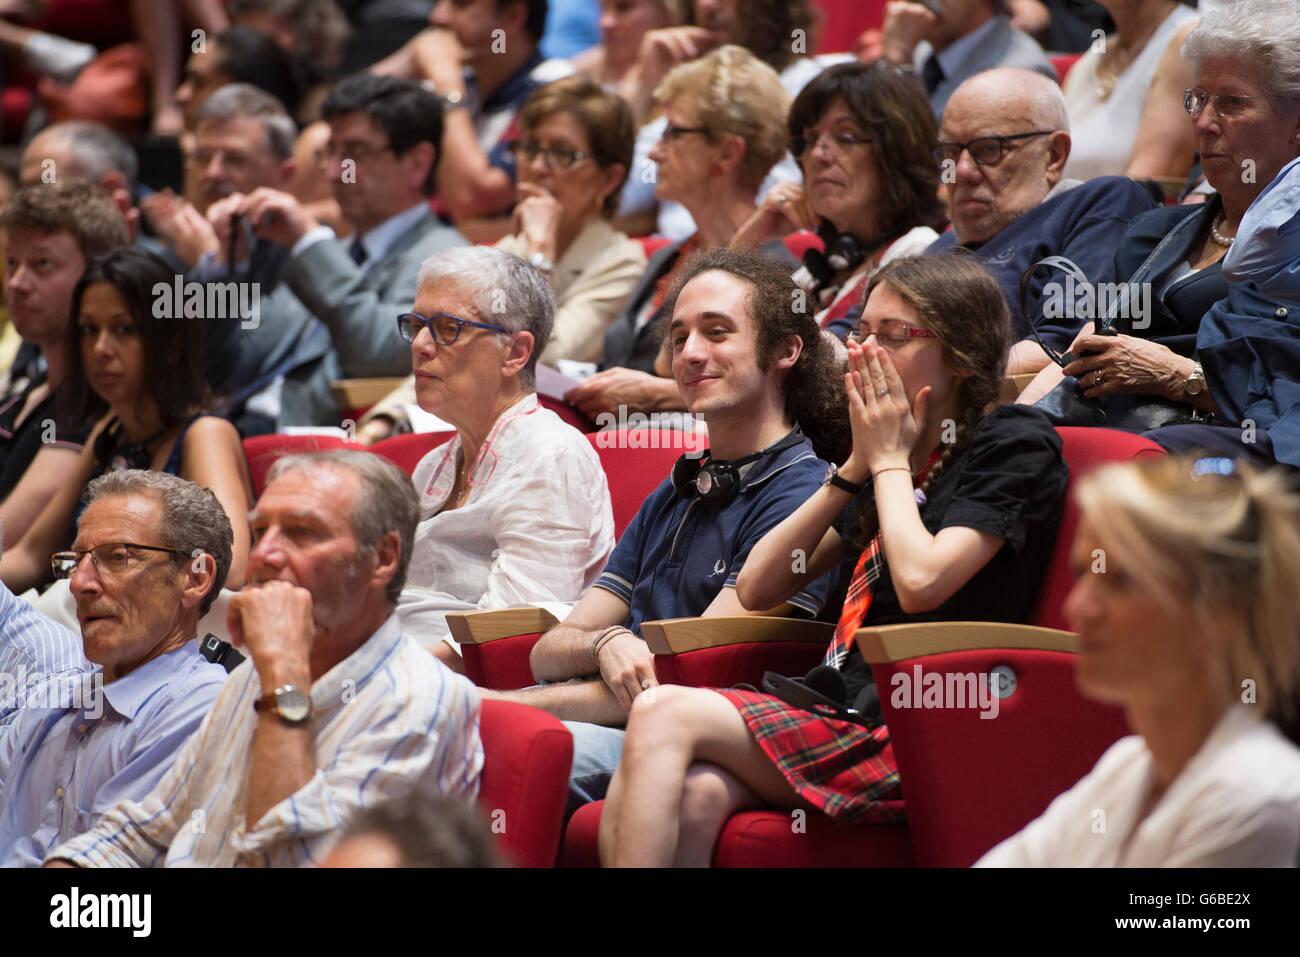 Turin, Italy - June 24, 2016: The Science of Interstellar Conference with Professor Kip Thorne of the California - Stock Image